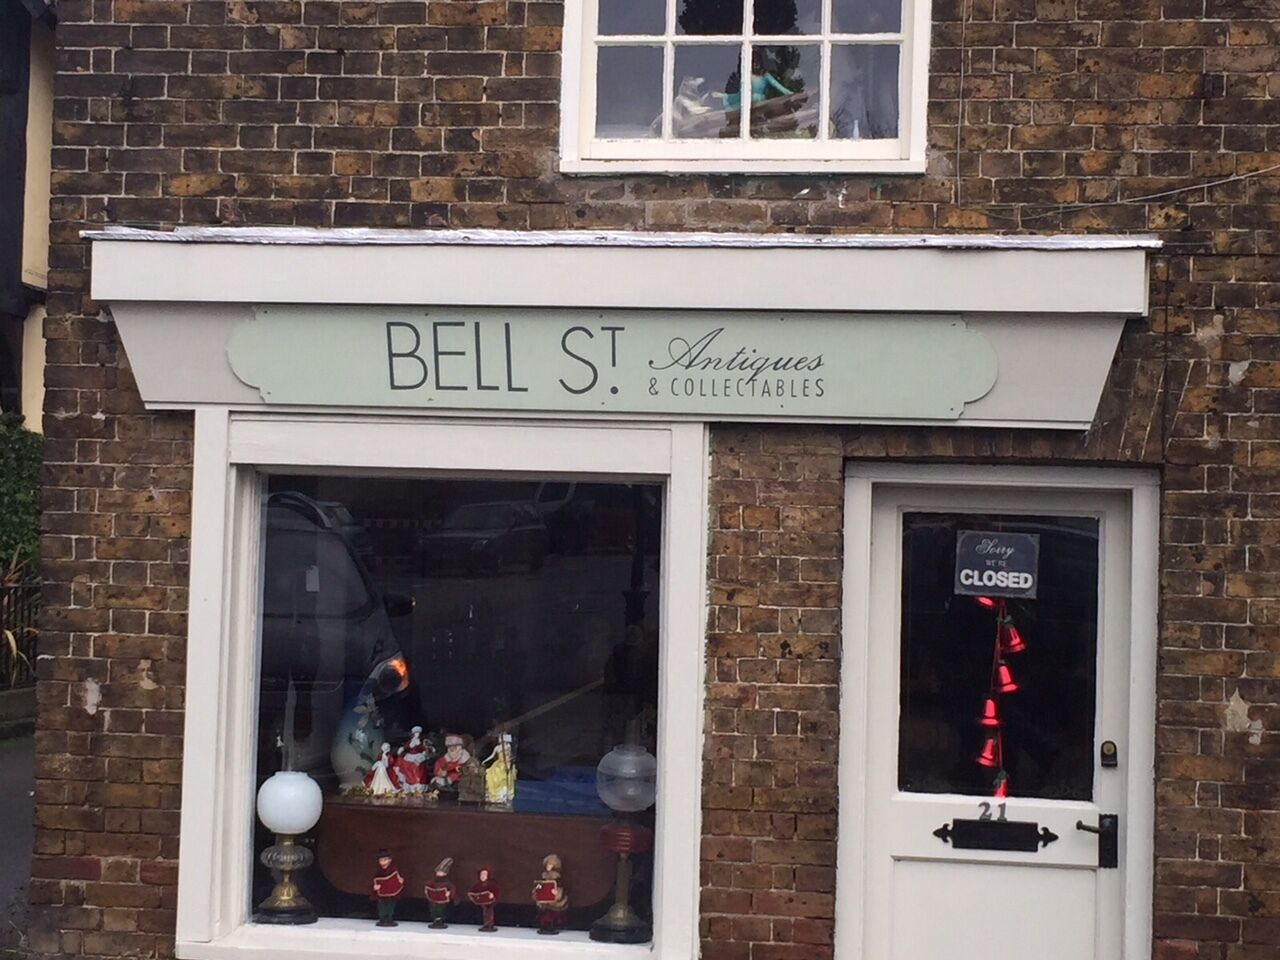 Bell Street Antiques